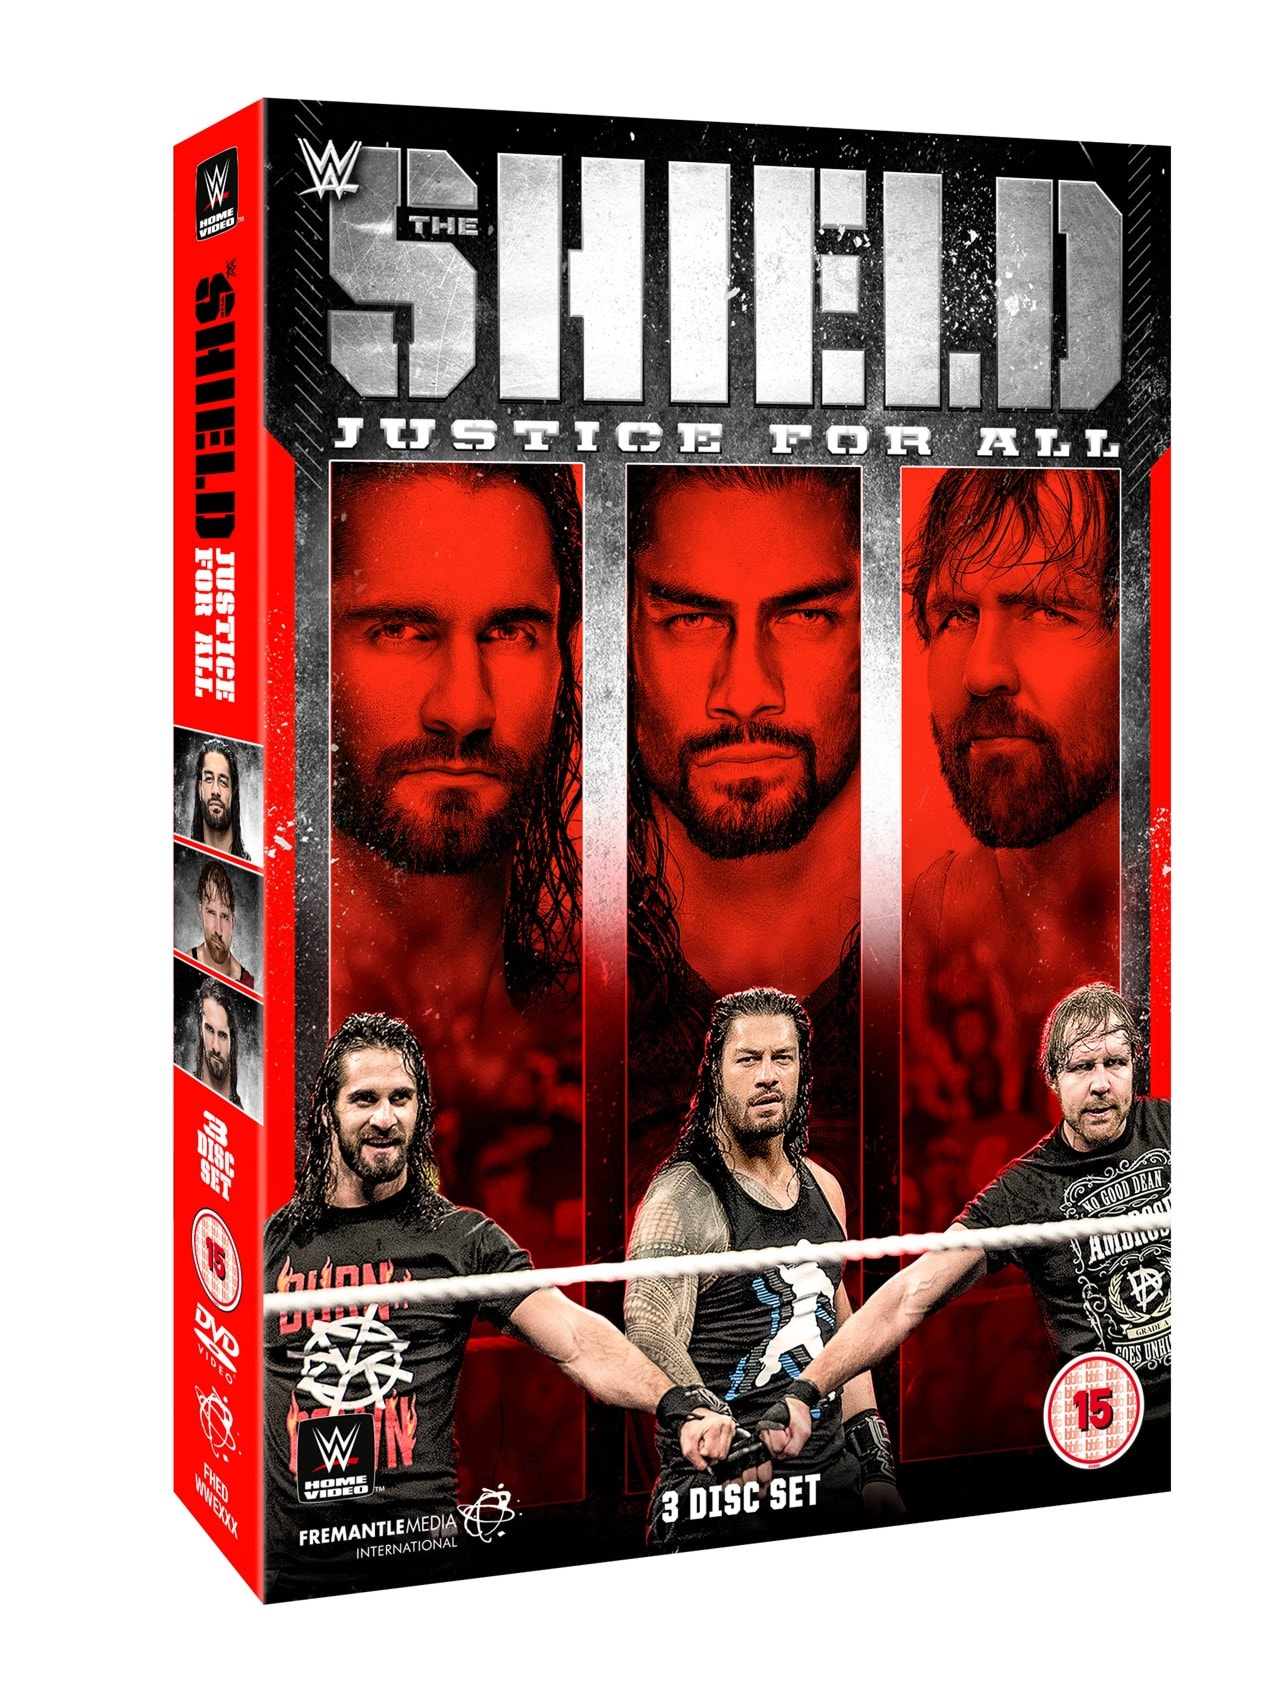 WWE: The Shield - Justice for All - 1